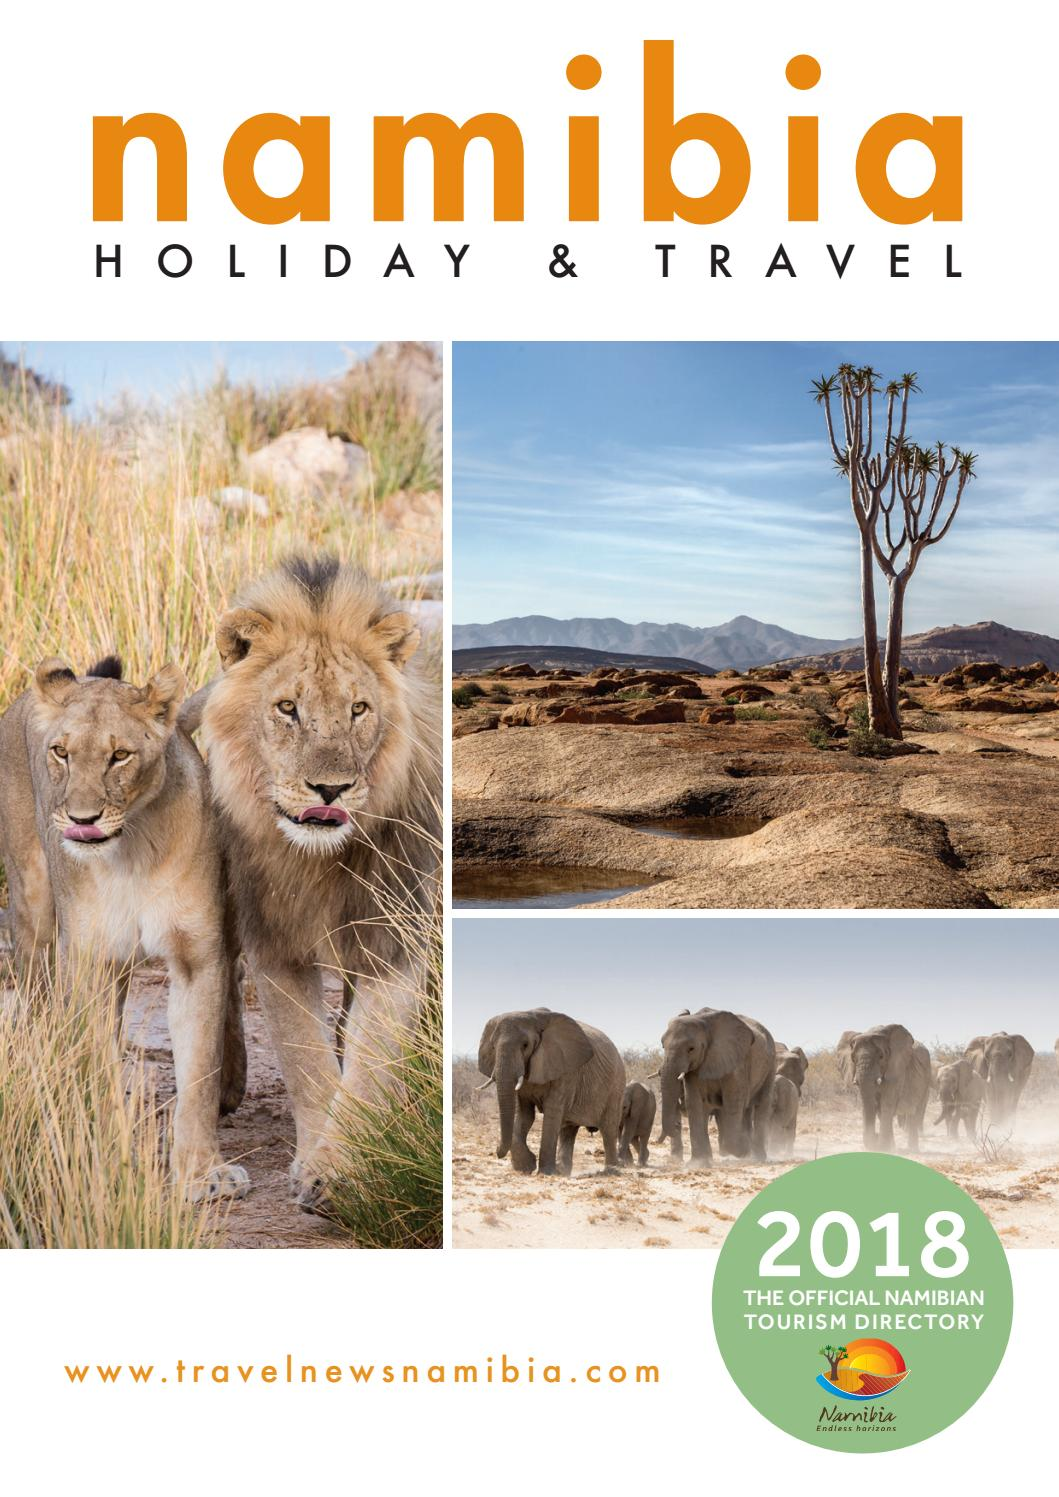 Namibia Holiday and Travel 2018 by Venture Media - issuu